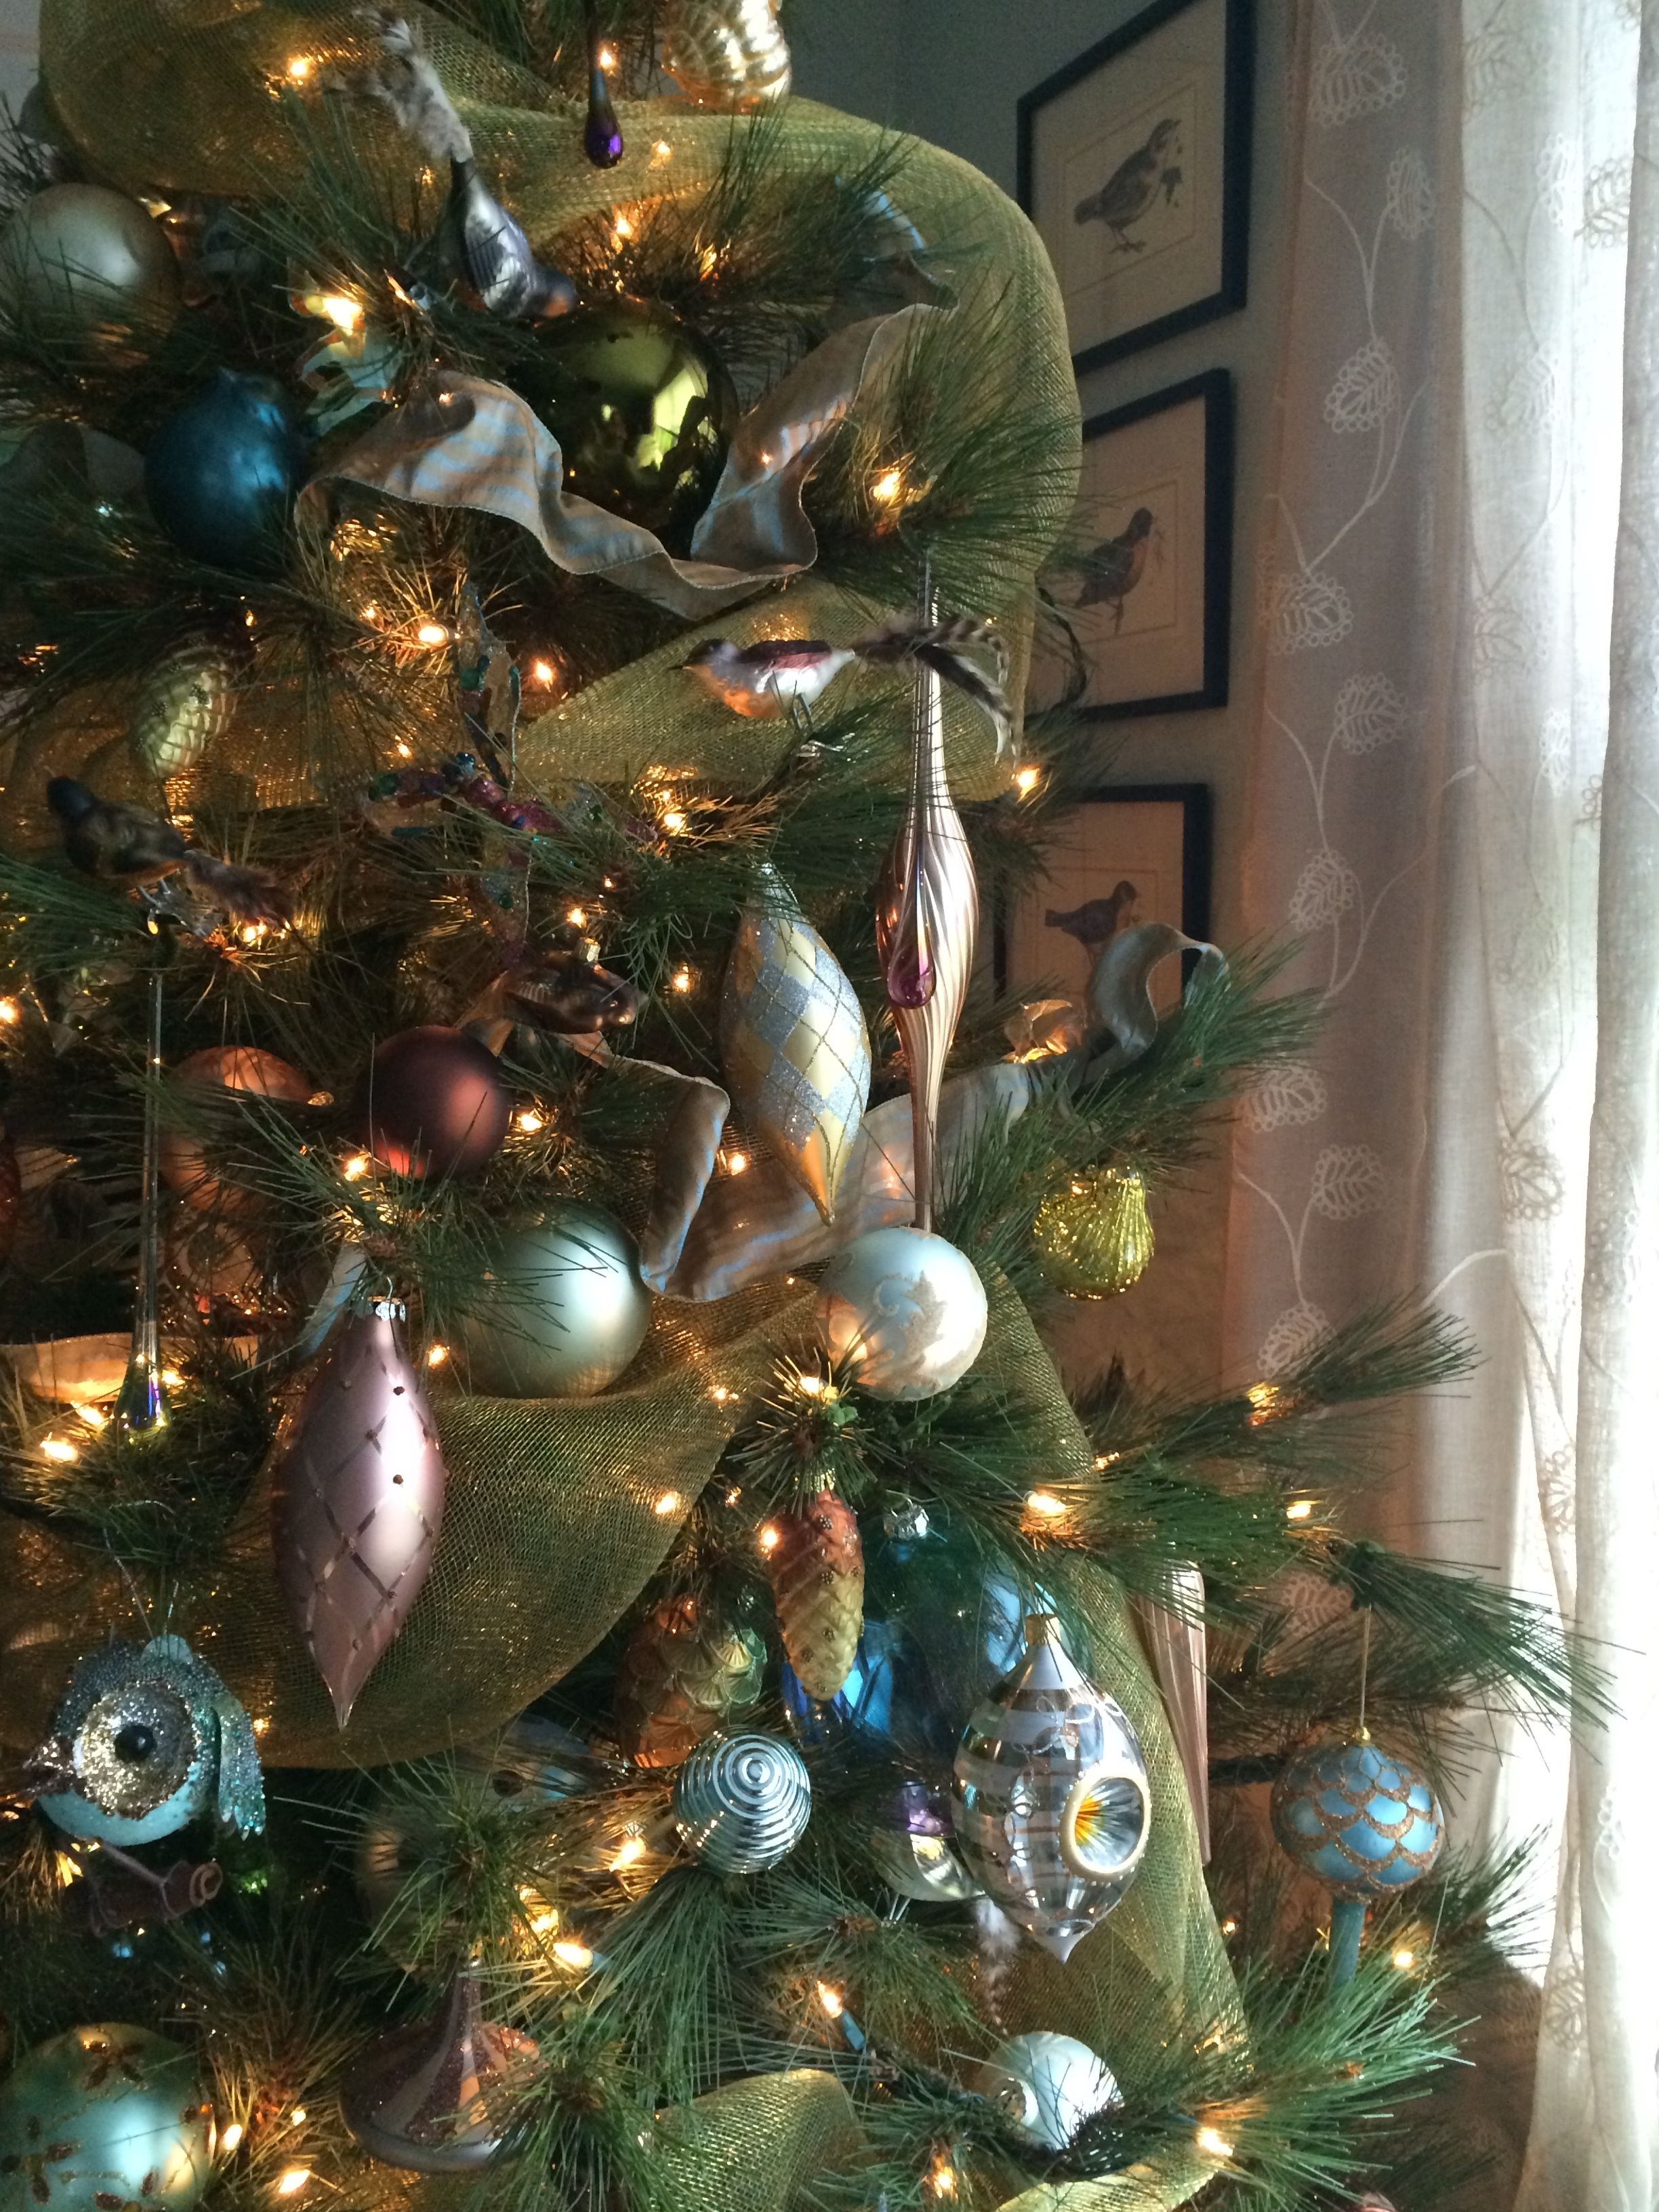 Non traditional christmas tree ideas - Christmas Decor Non Traditional Colored Ornaments